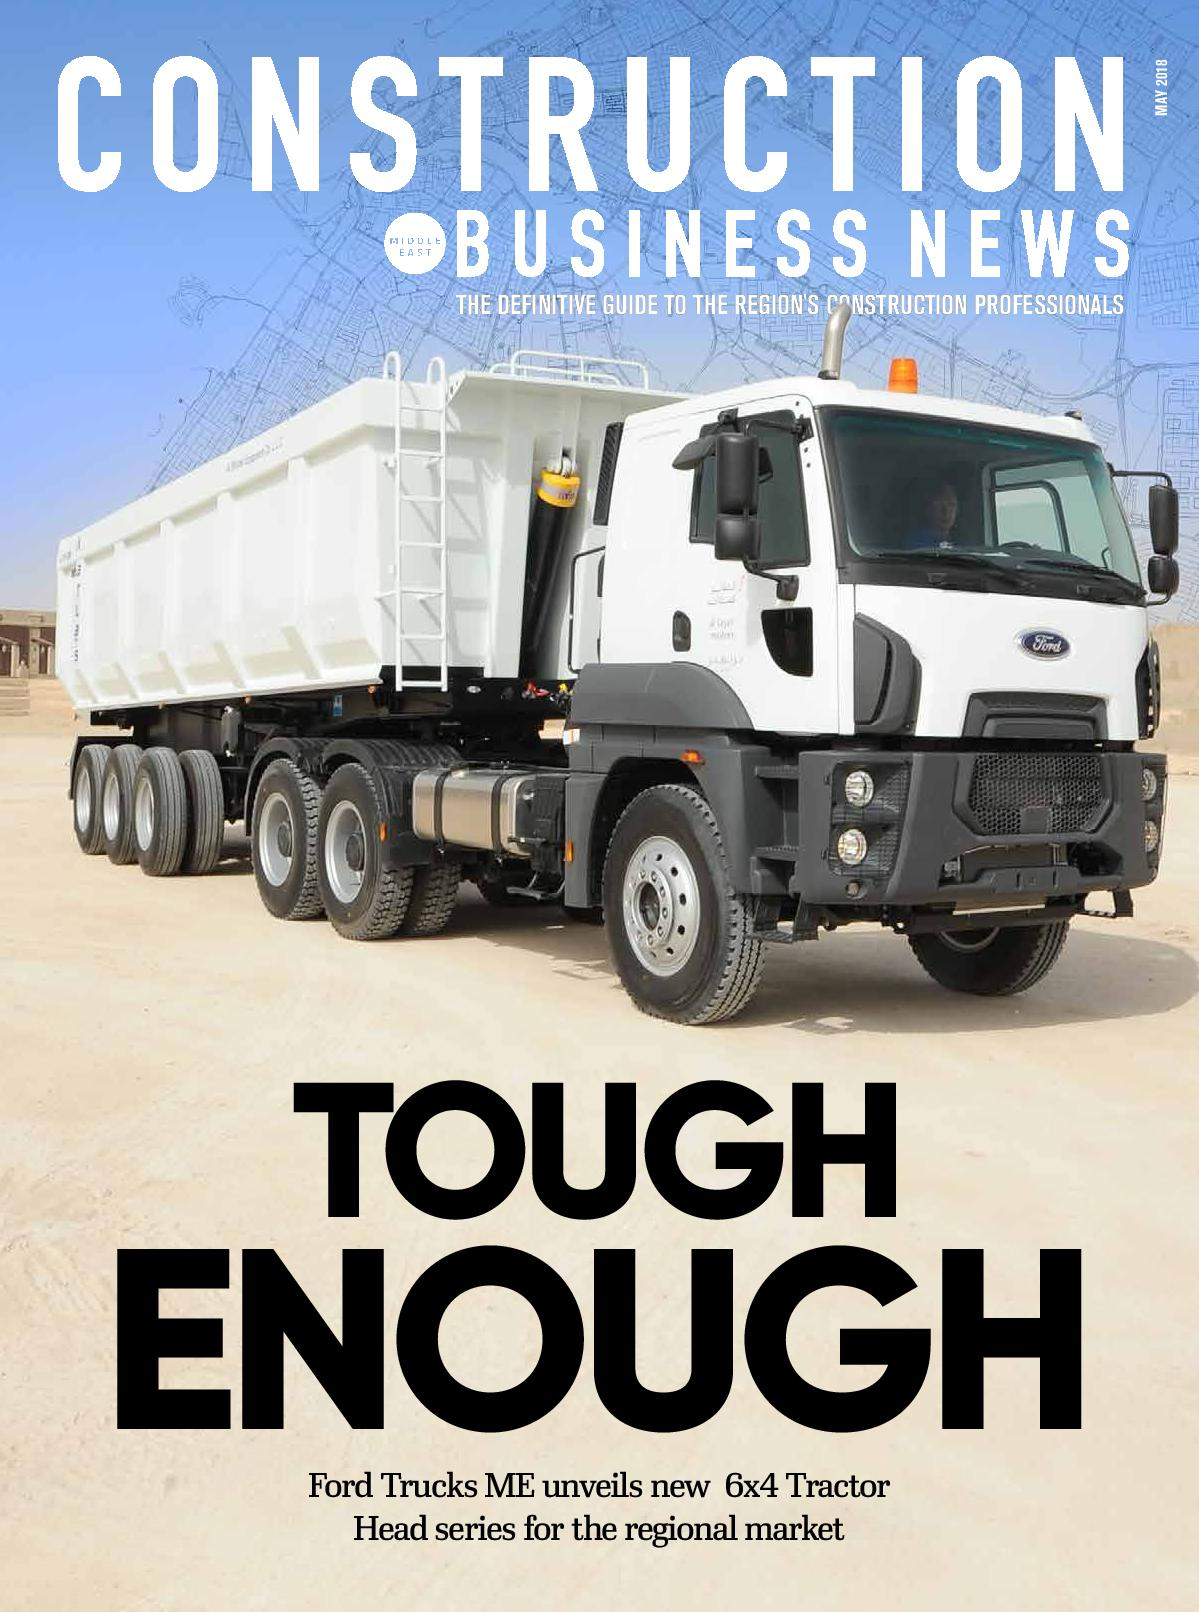 http://www.cbnme.com/magazines/construction-business-news-may-2018/